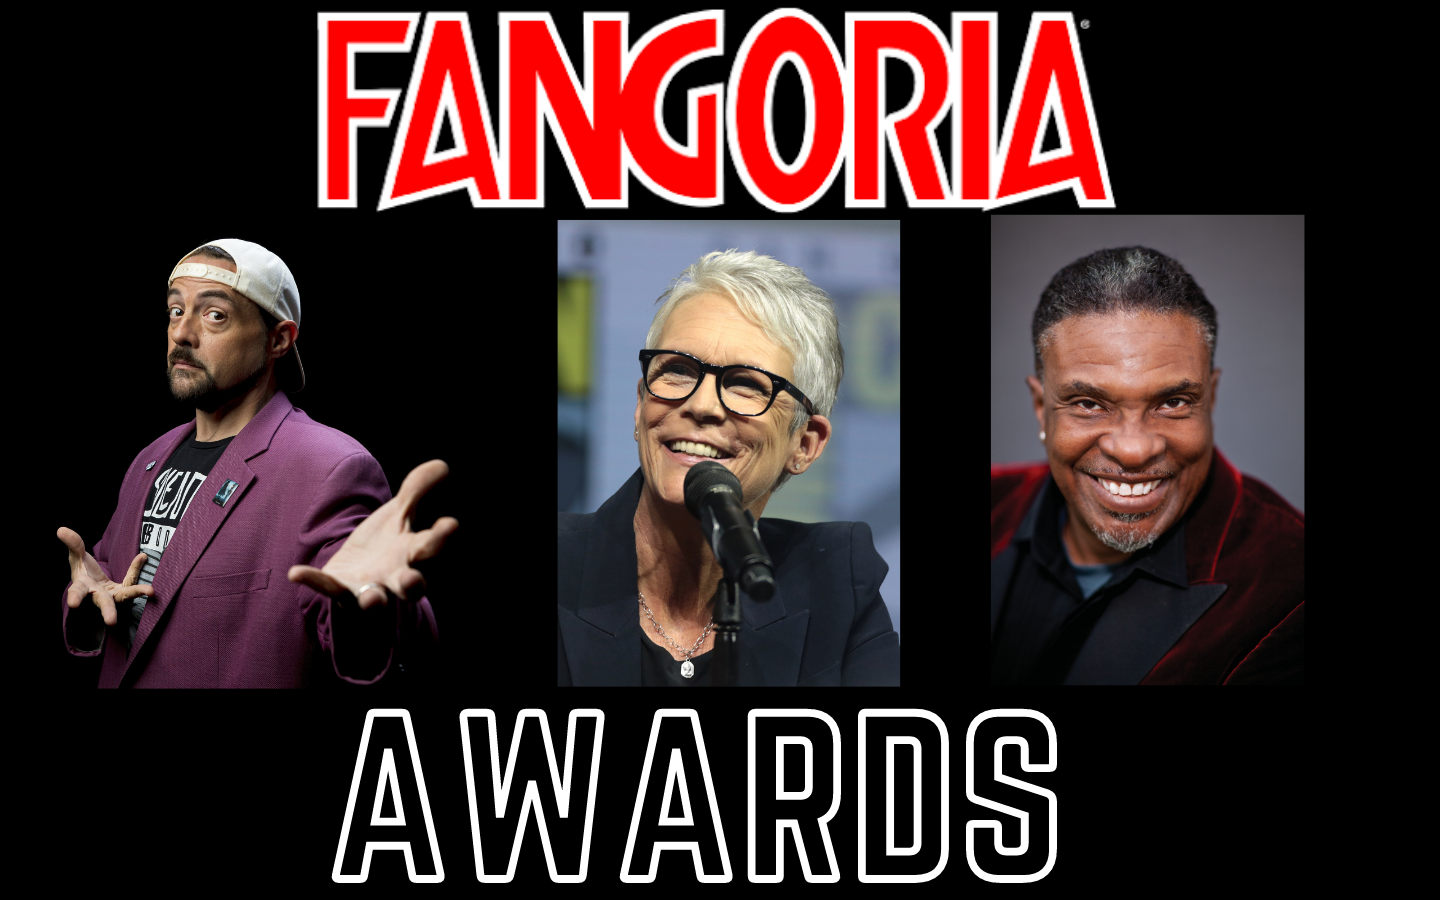 Fangoria Awards Presenters Announced